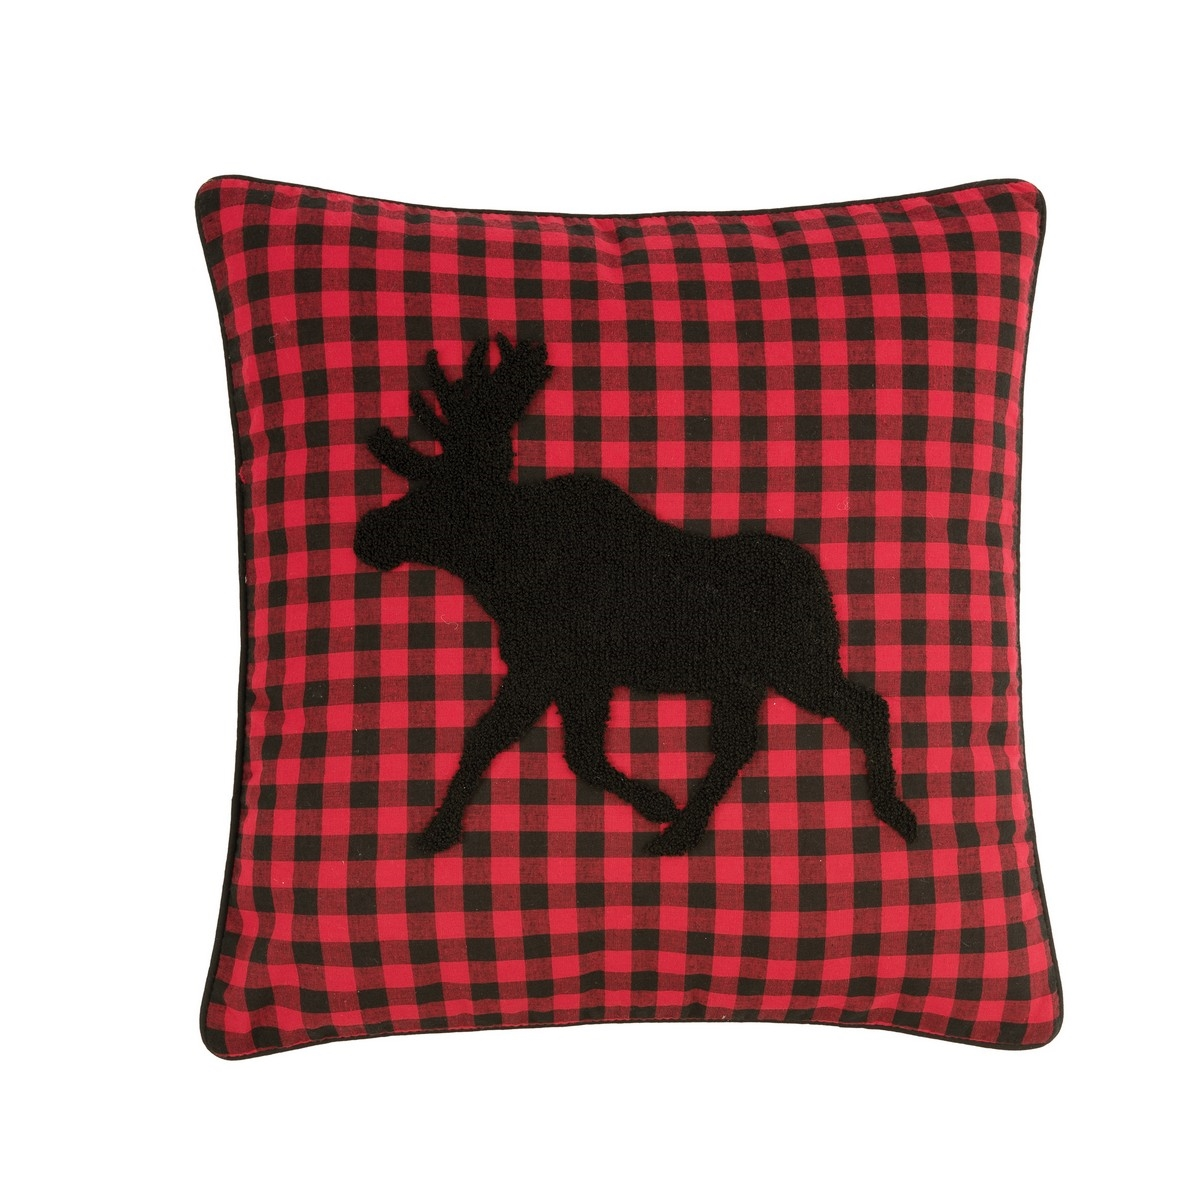 Woodford Moose Pillow